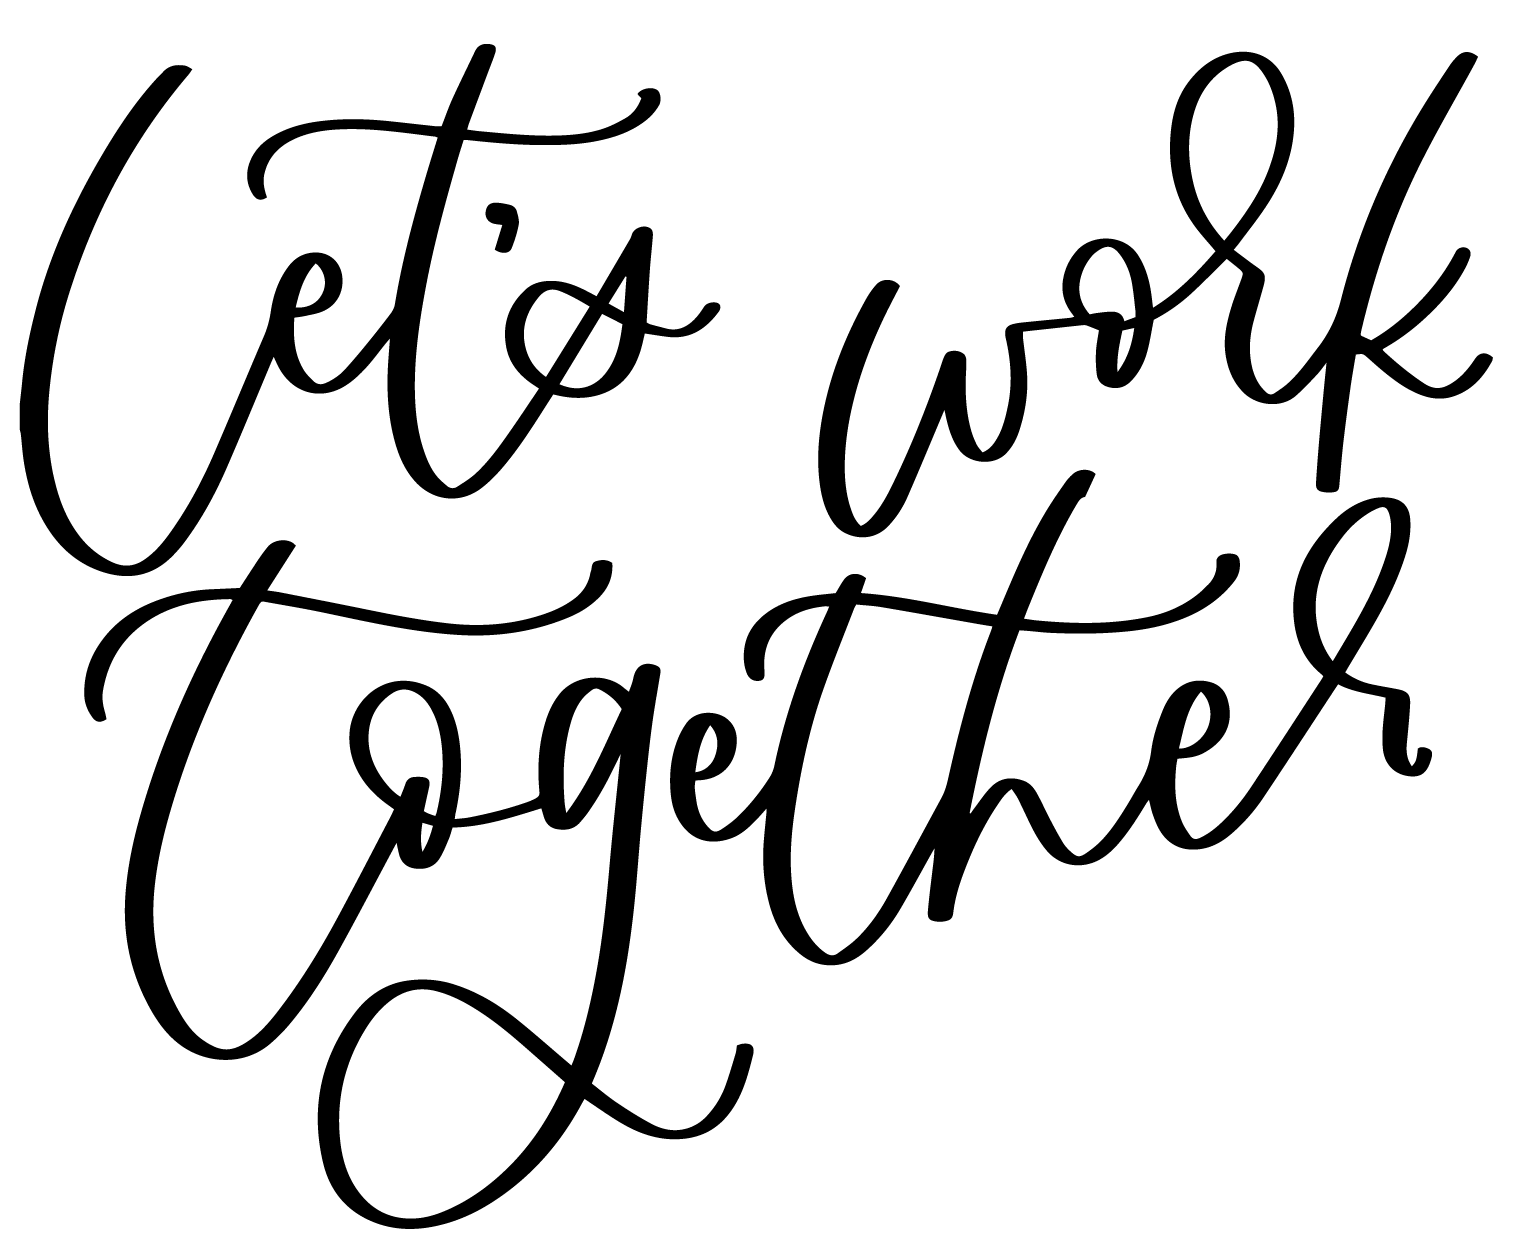 Untitled-19_work together.png